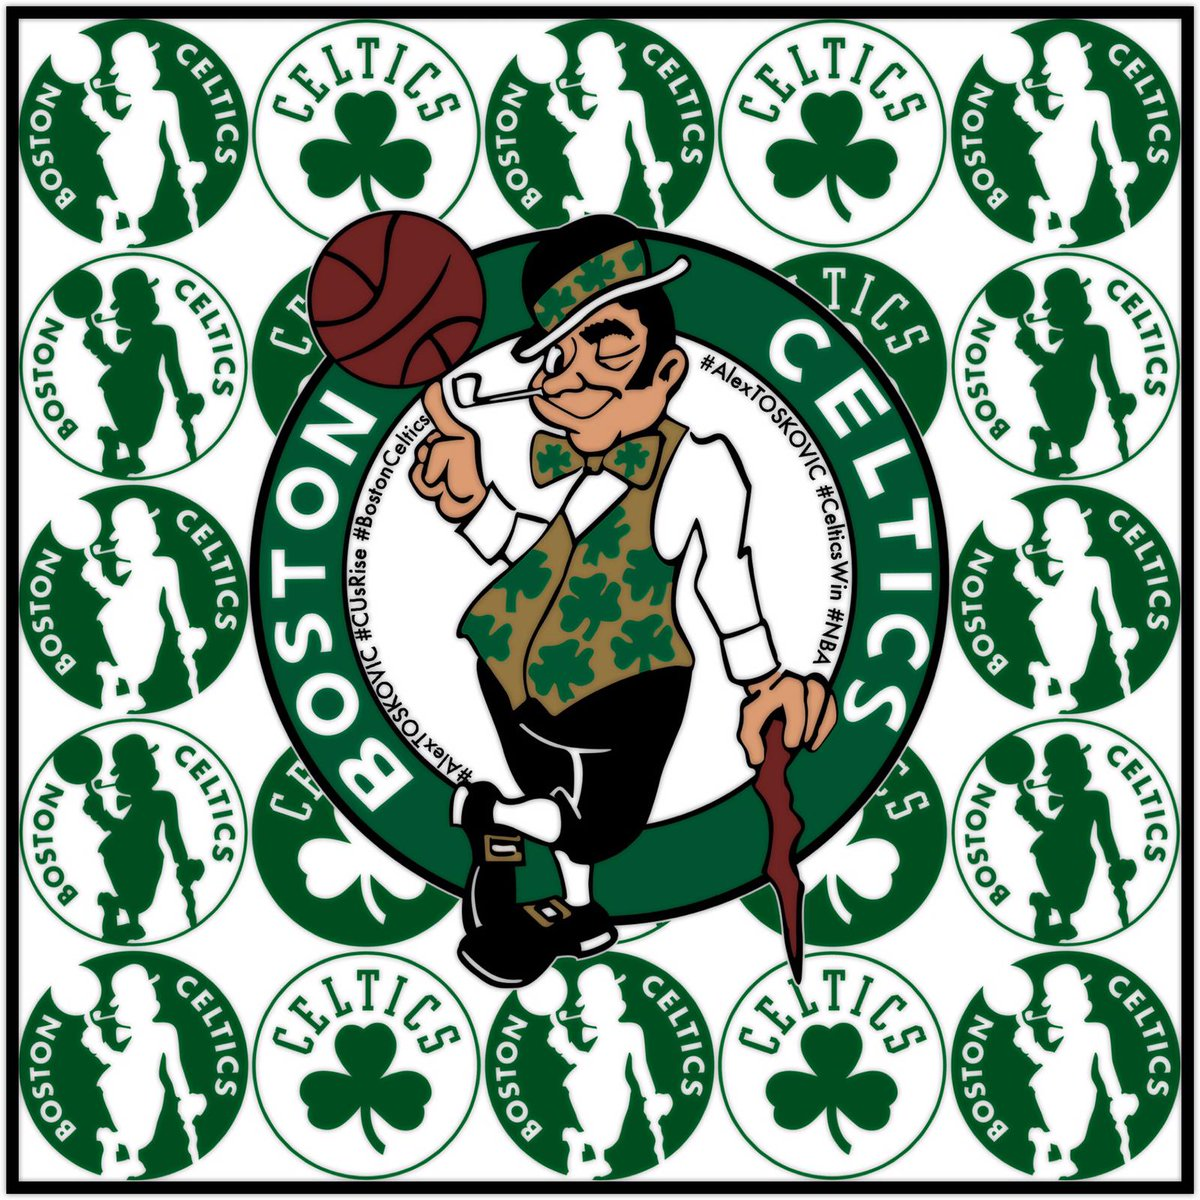 FT, @celtics couldn't prevail over @Bucks today. We had a bad shoothing night, we weren't concentrated enough. Let's focus and prepare for the @chicagobulls #Celtics #CUsRise #GOCeltics #BostonCeltics #NBA #NBATwitter #AlexTOSKOVIC